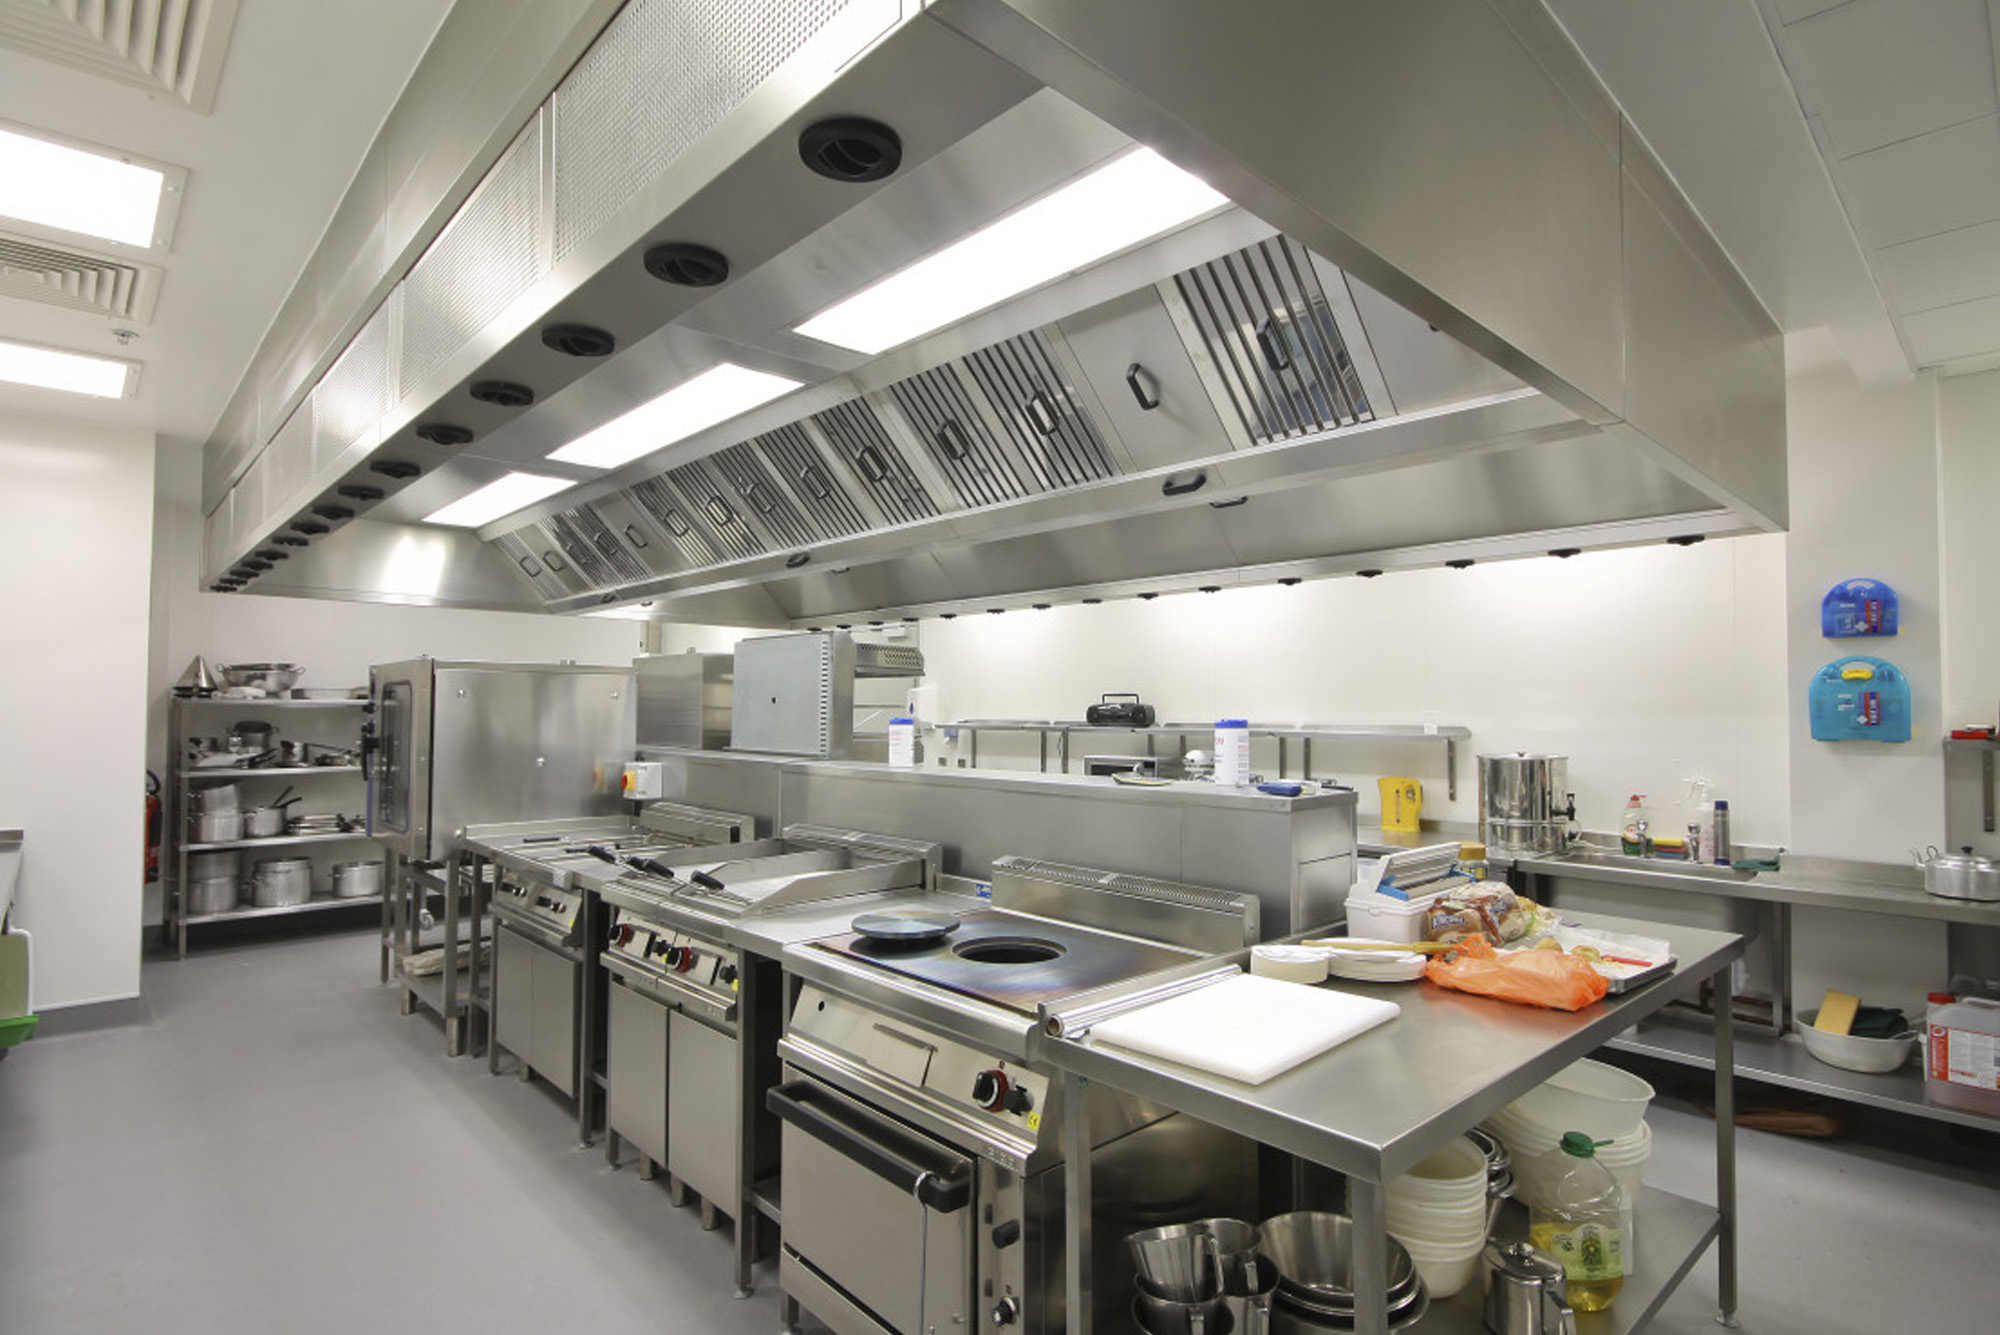 DEEP CLEANING OF KITCHEN EXTRACT SYSTEMS